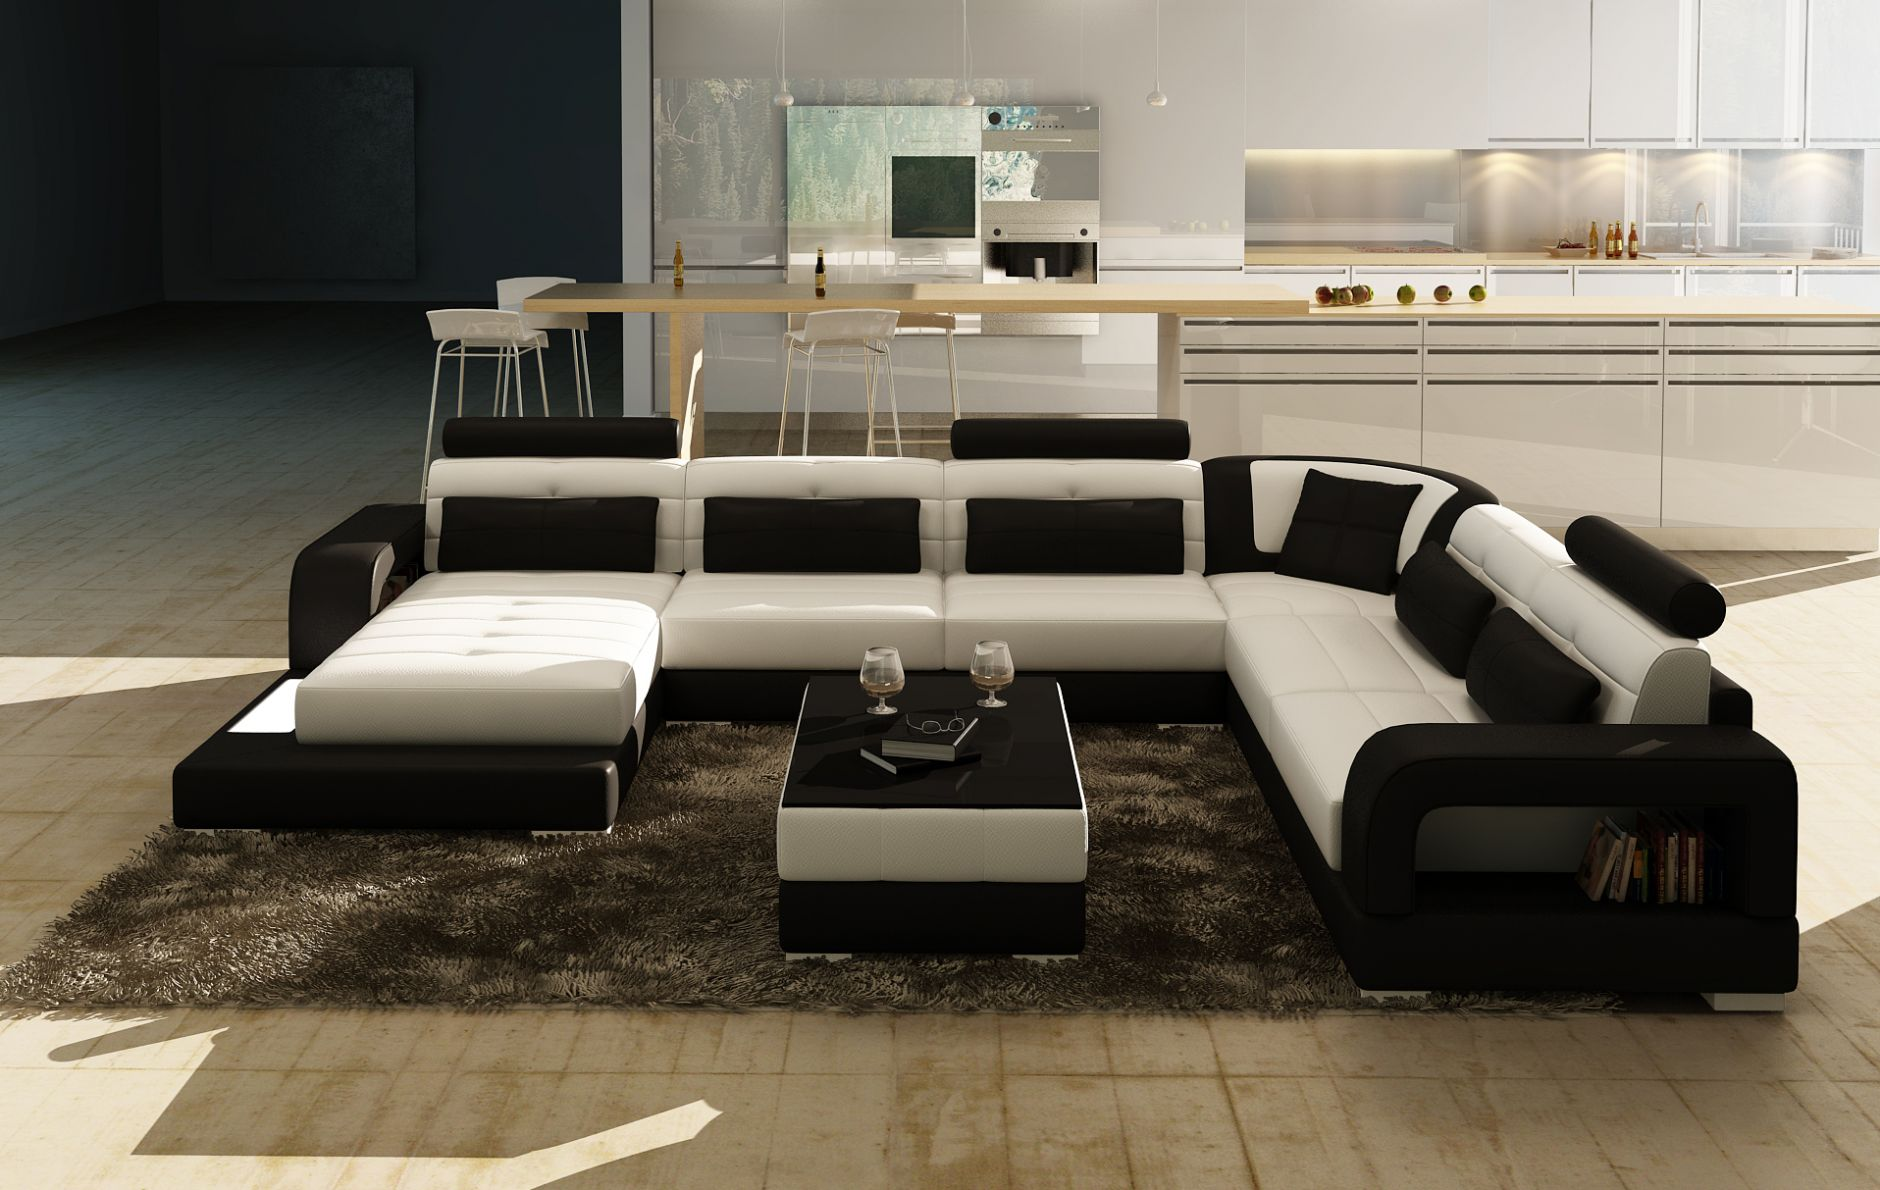 schnittsofa schnittsofa modell 6145die m bel aus italien. Black Bedroom Furniture Sets. Home Design Ideas